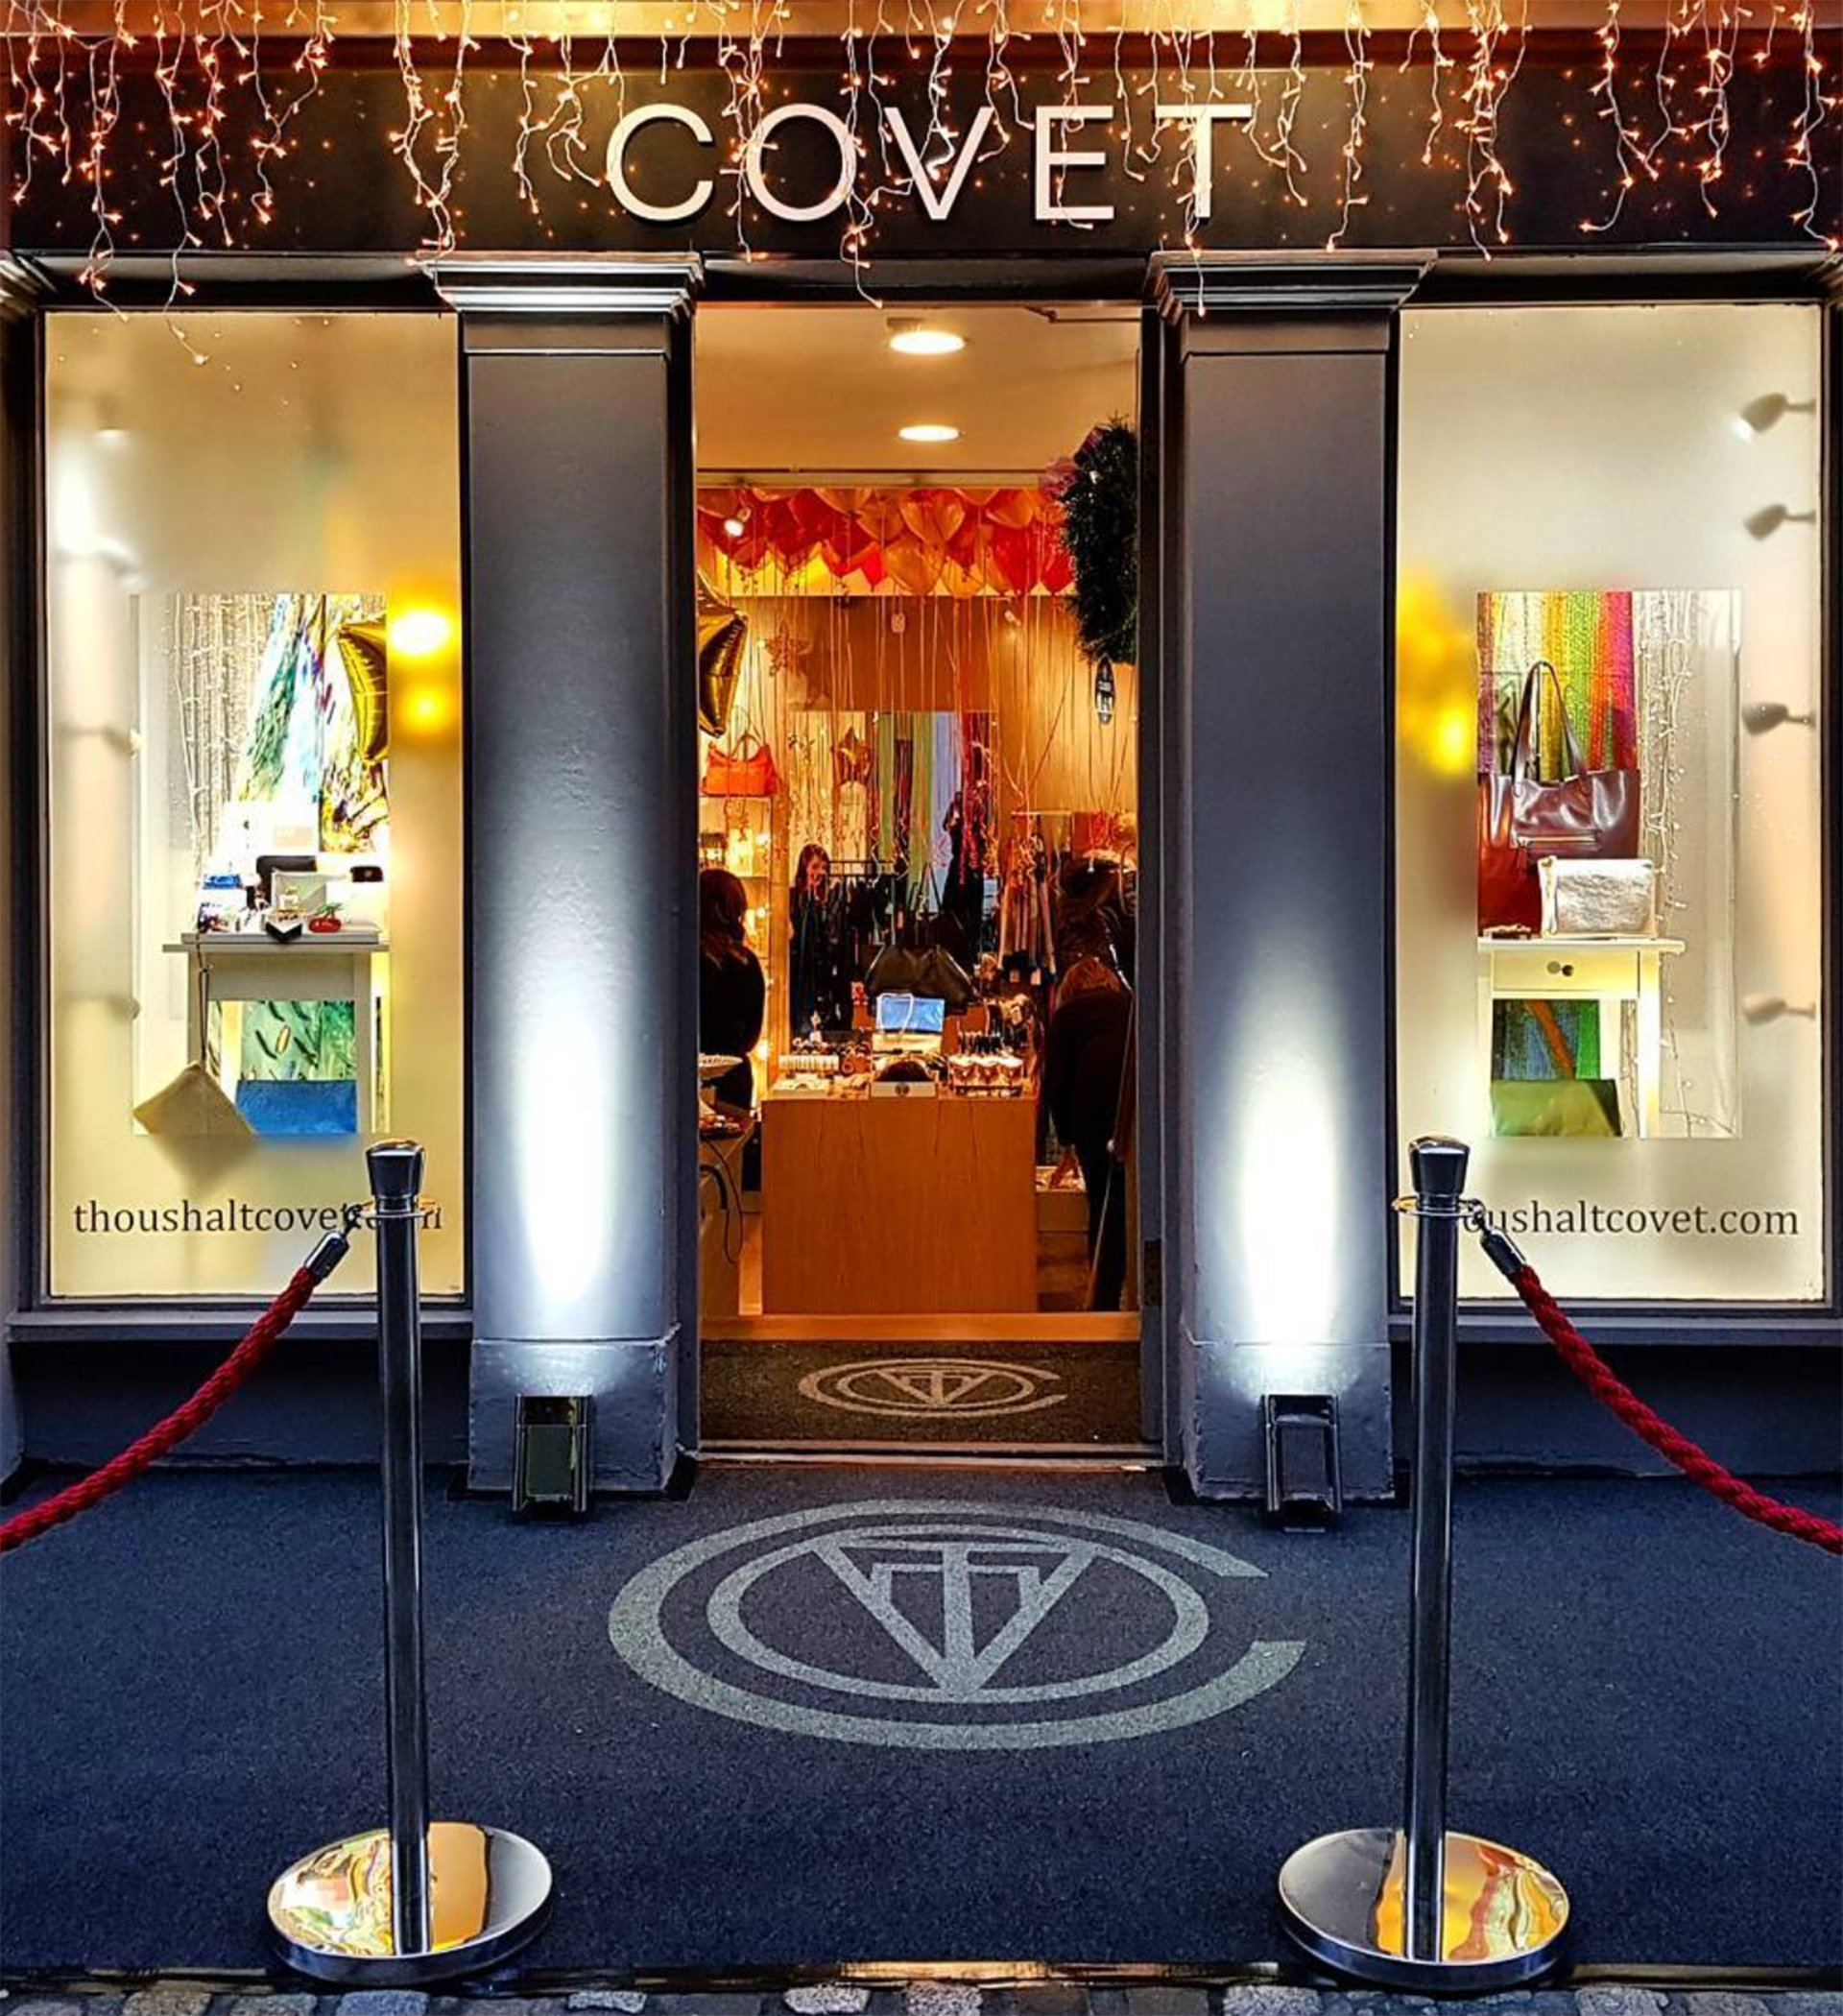 The exterior of Covet shop in Edinburgh